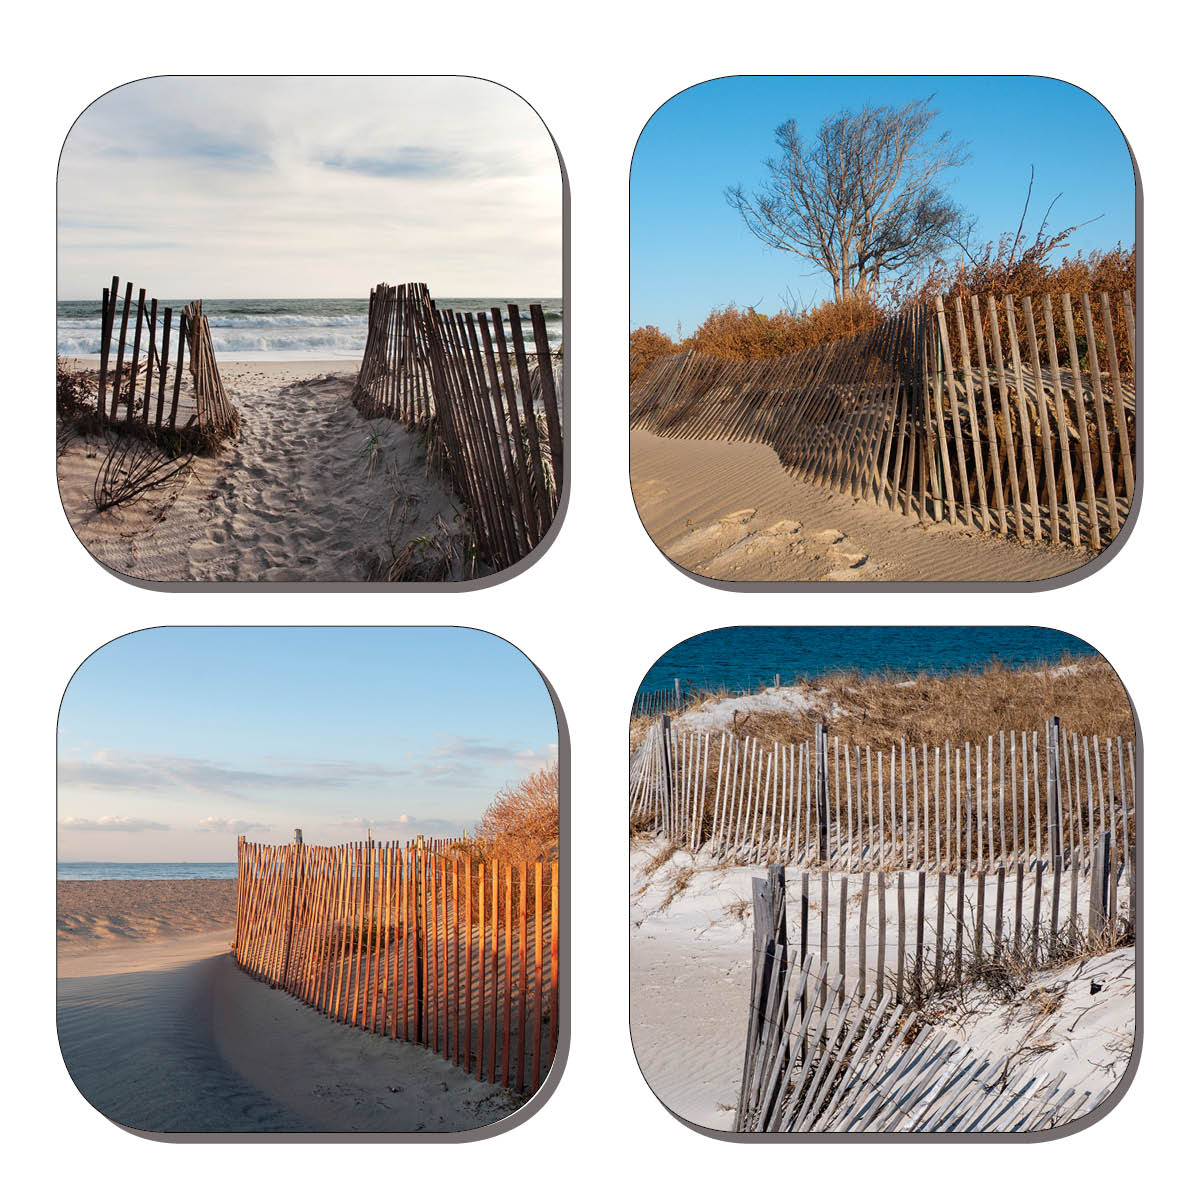 Coaster Set - Sand Fences